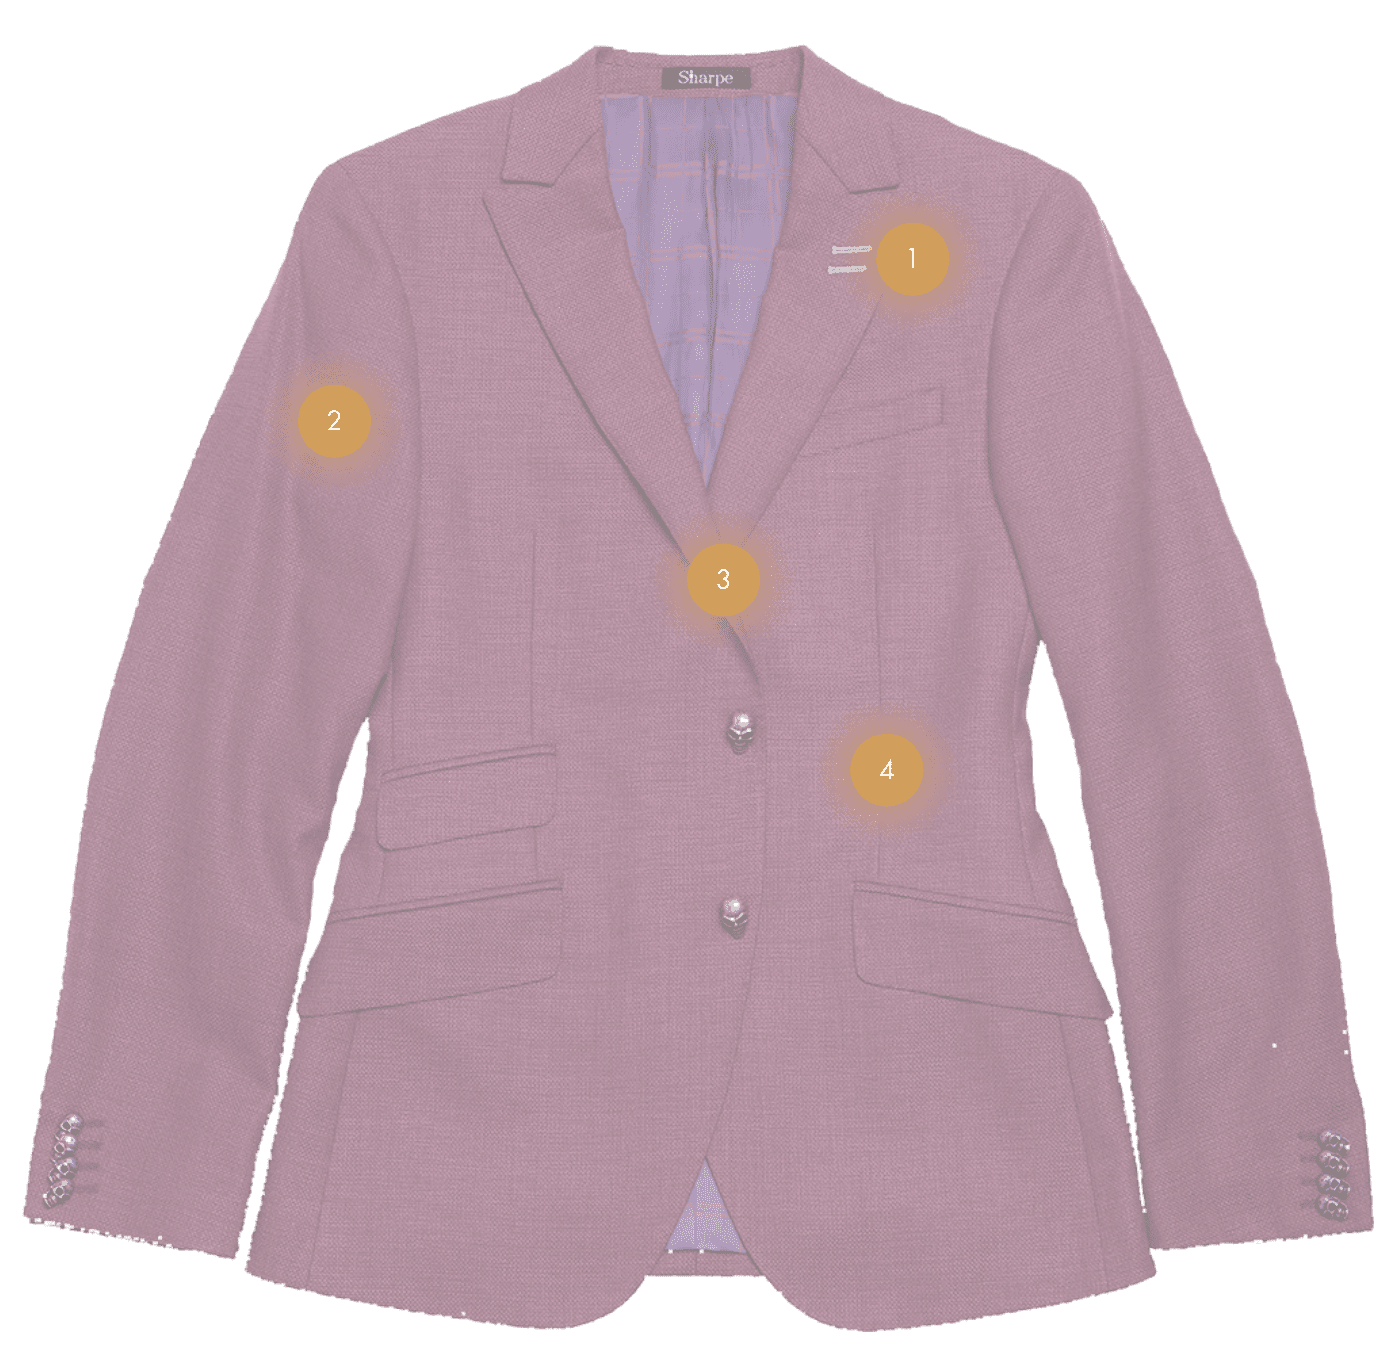 The Sharpe Experience purple suit jacket